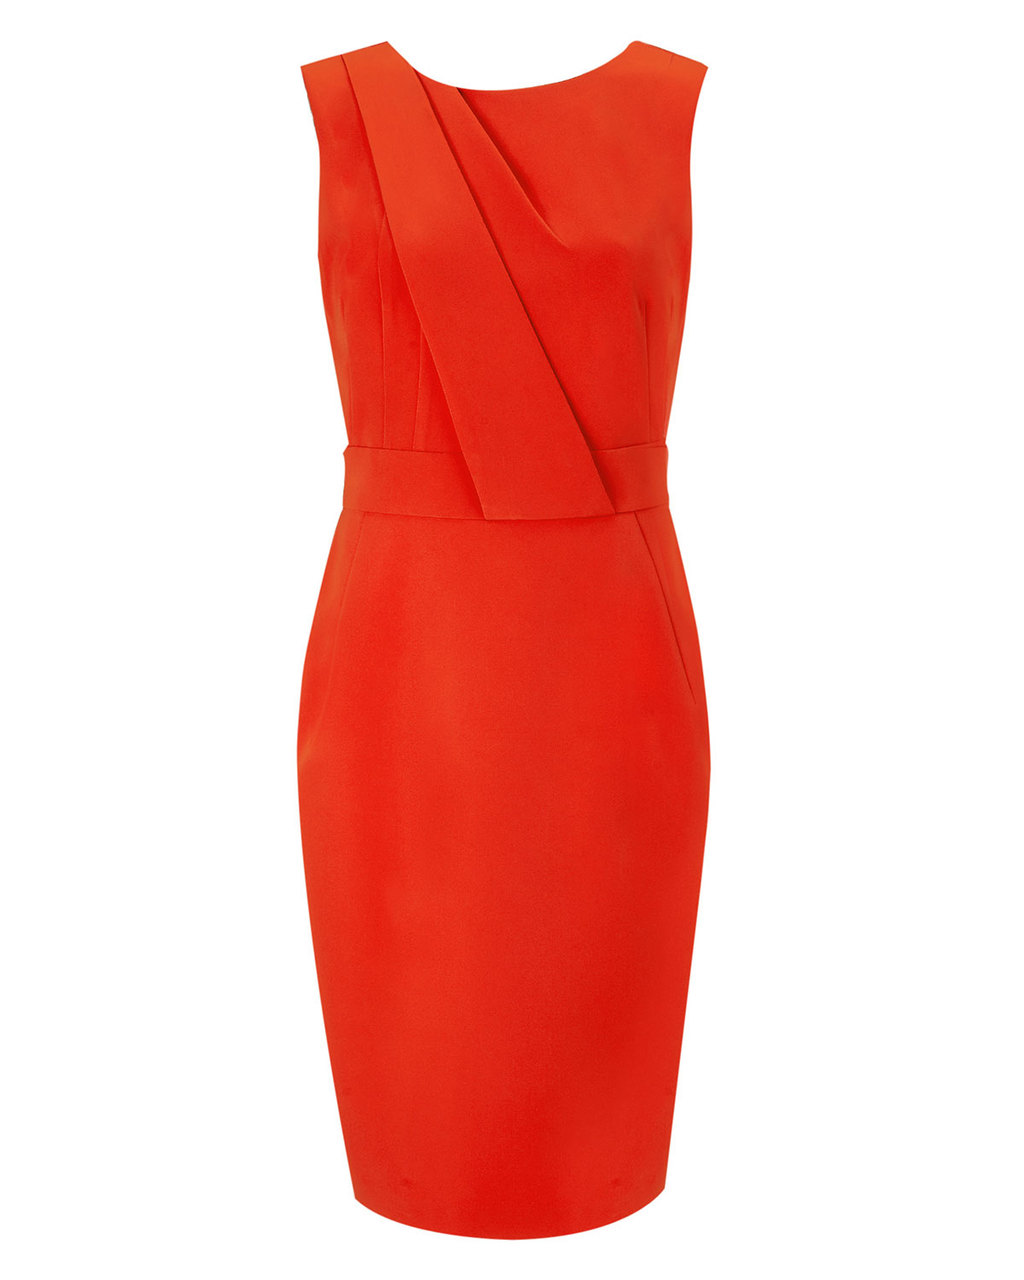 Jemina Dress - style: shift; length: mid thigh; neckline: round neck; fit: tailored/fitted; pattern: plain; sleeve style: sleeveless; predominant colour: true red; occasions: evening, occasion; fibres: polyester/polyamide - stretch; sleeve length: sleeveless; texture group: crepes; bust detail: tiers/frills/bulky drapes/pleats; pattern type: fabric; season: s/s 2015; wardrobe: event